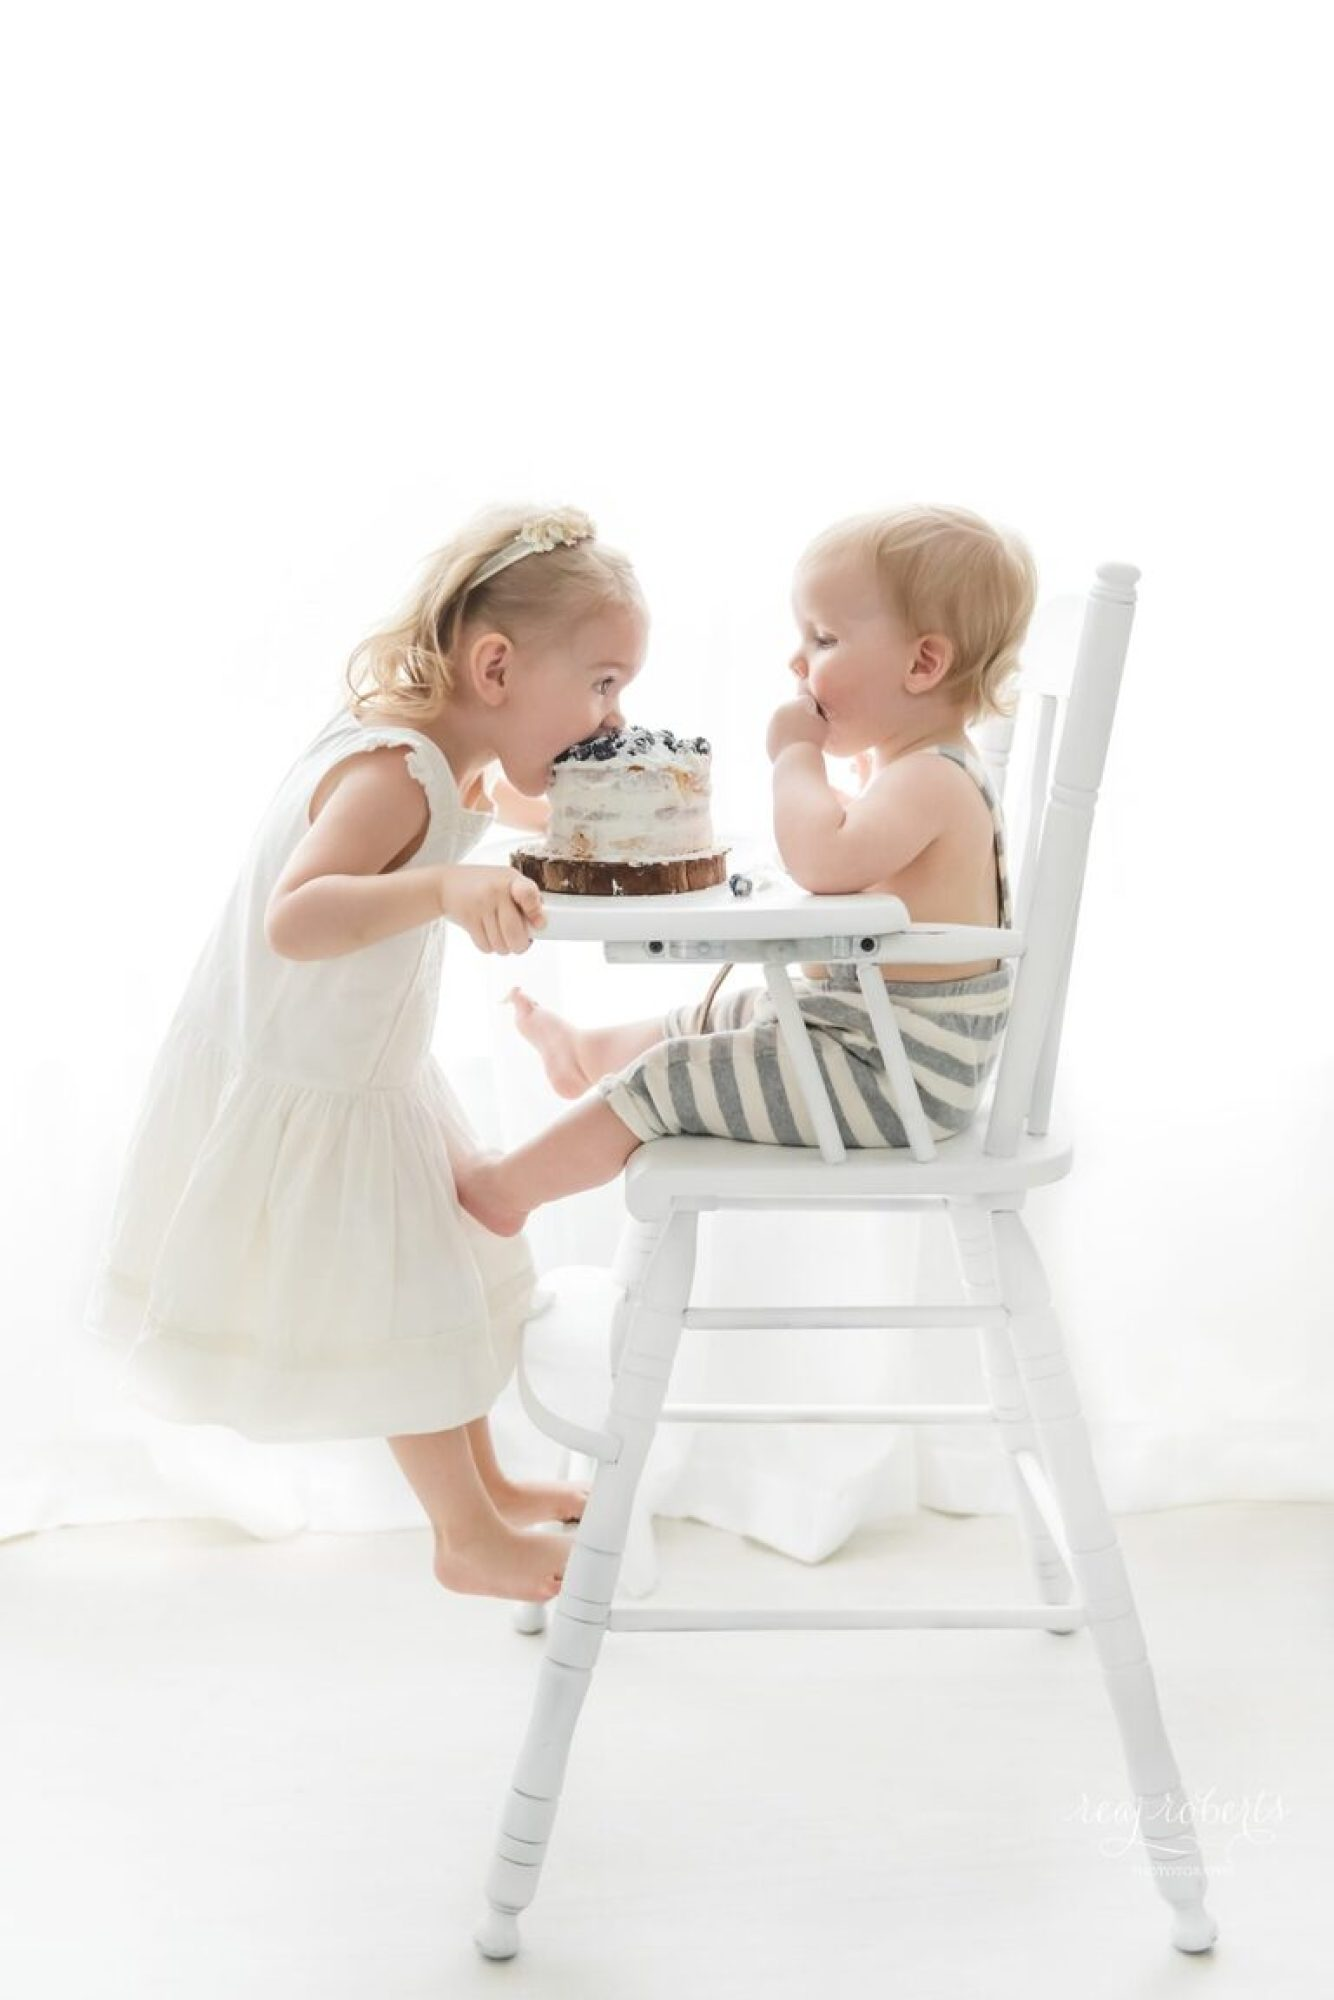 baby in high chair cake smash with big sister taking a bite | Reaj Roberts Photography